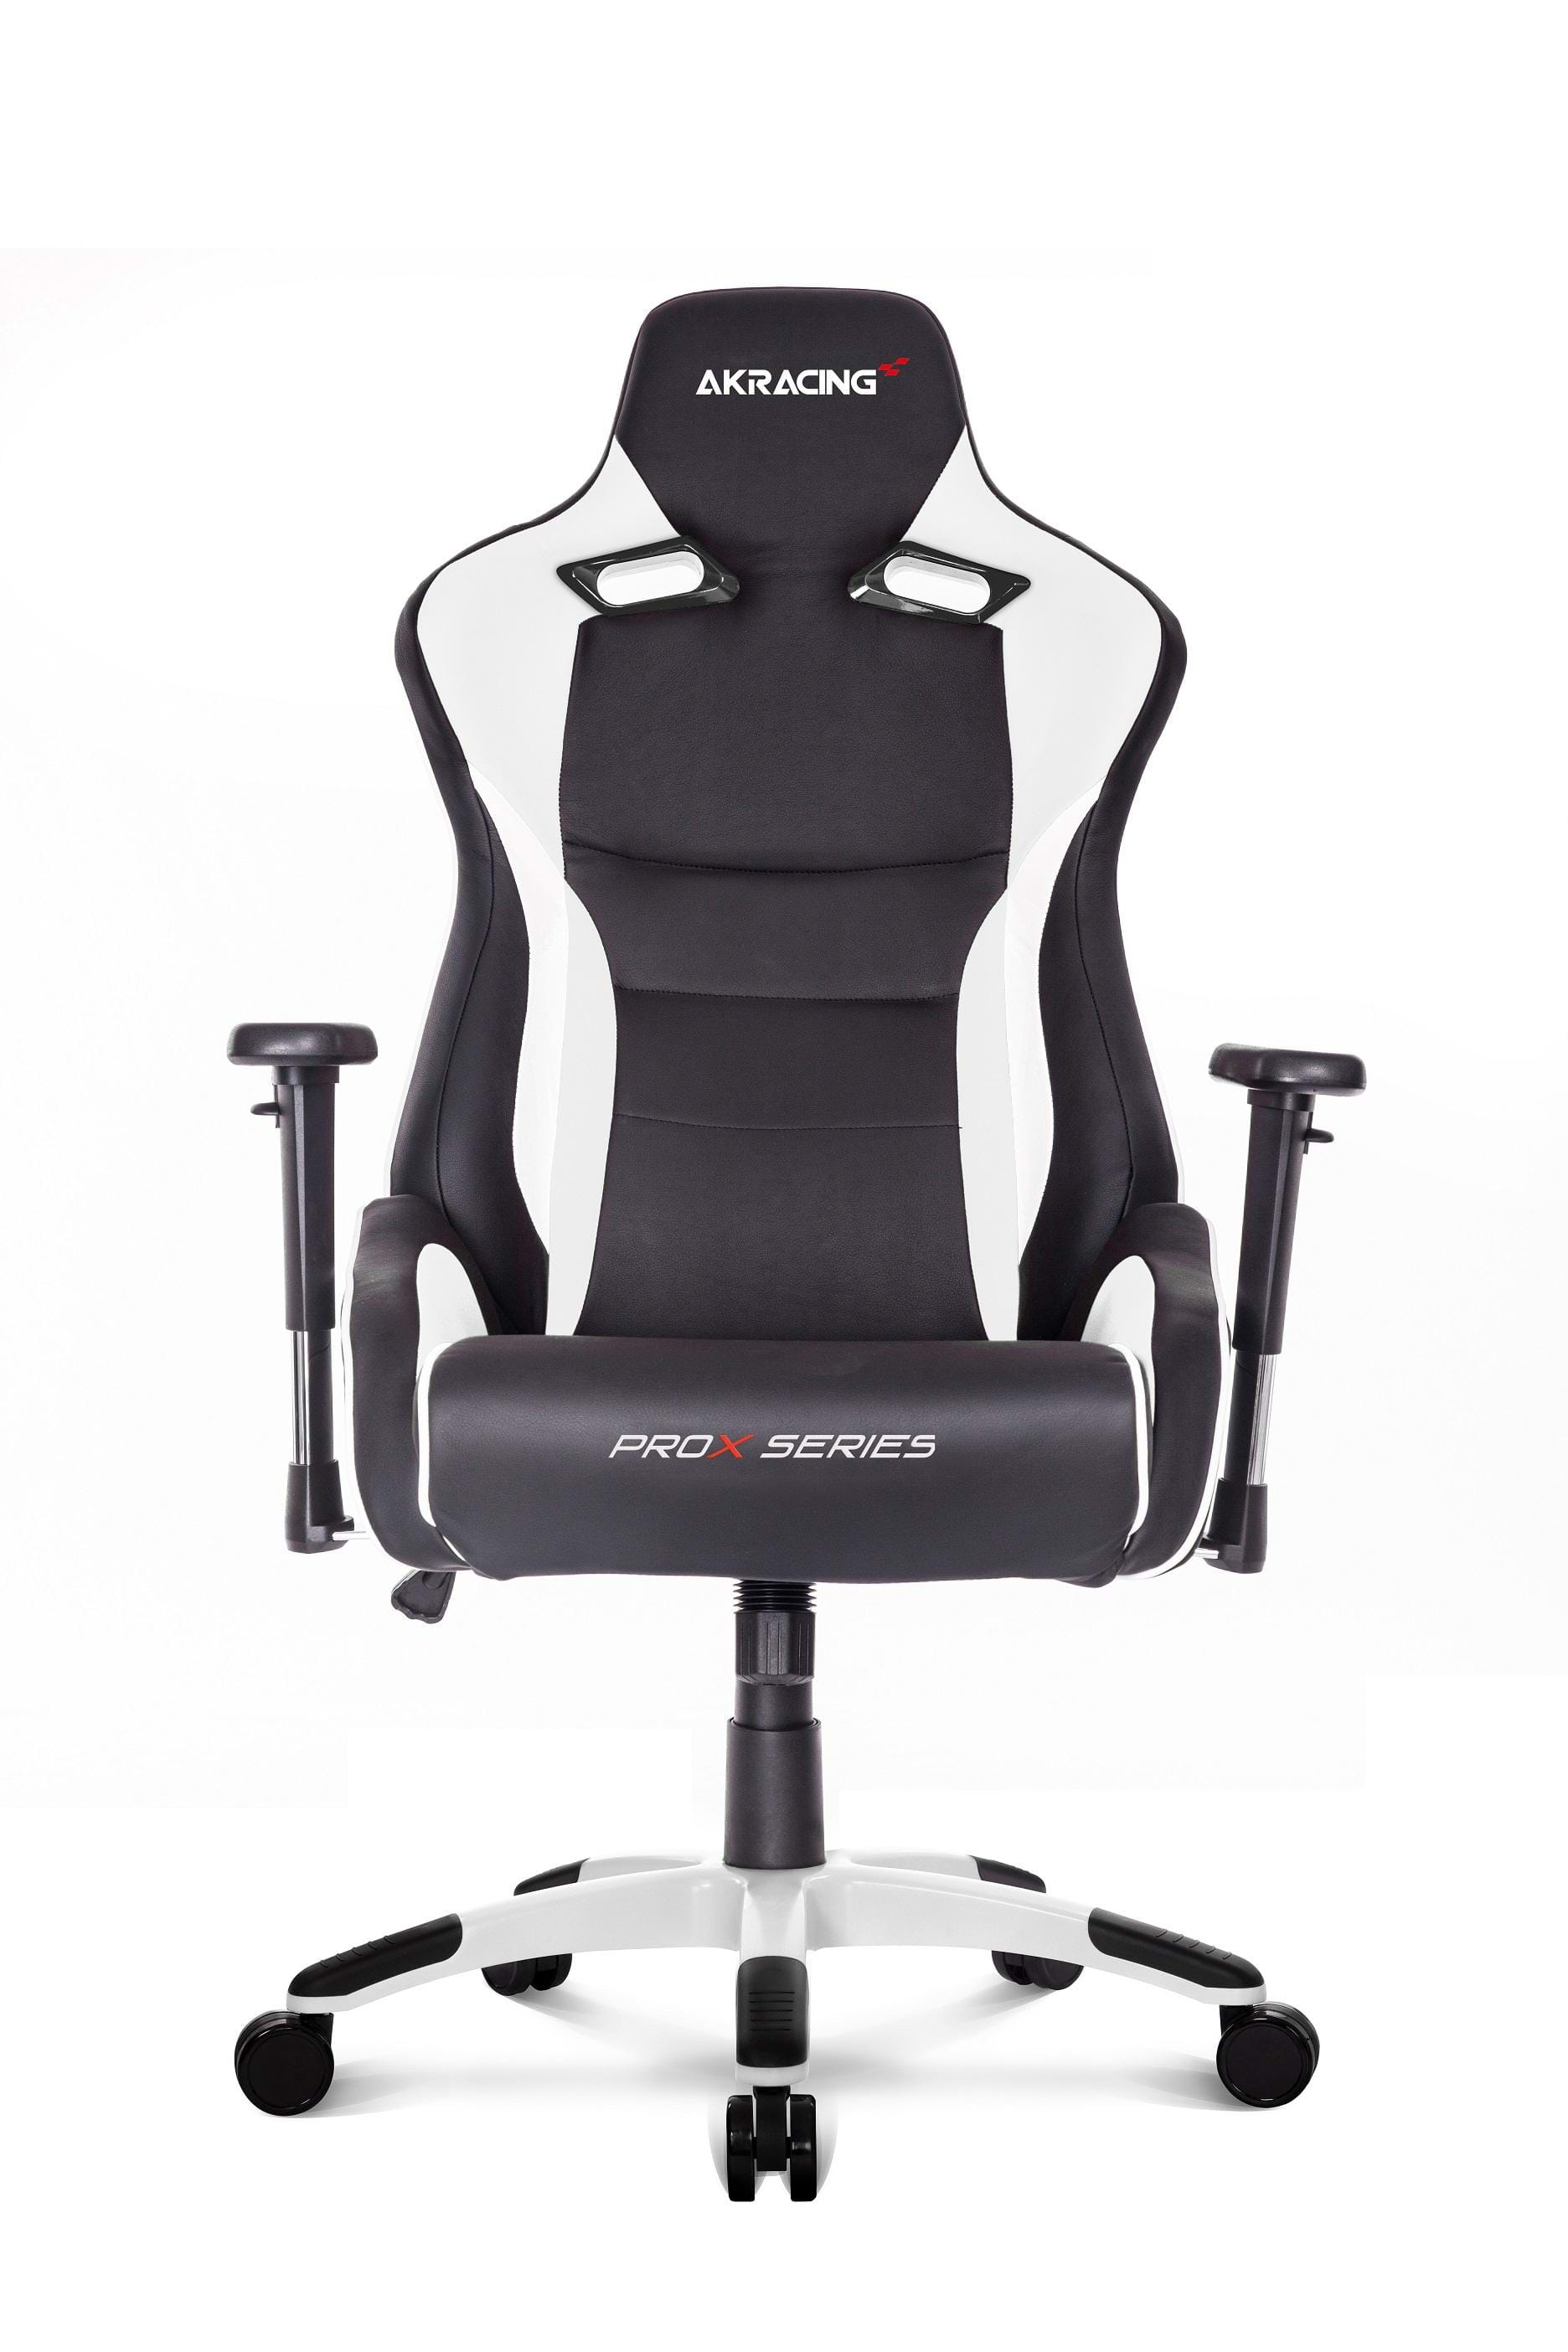 akracing prox white gaming stuhl schwarz wei pu leder bis zu 150 kg. Black Bedroom Furniture Sets. Home Design Ideas